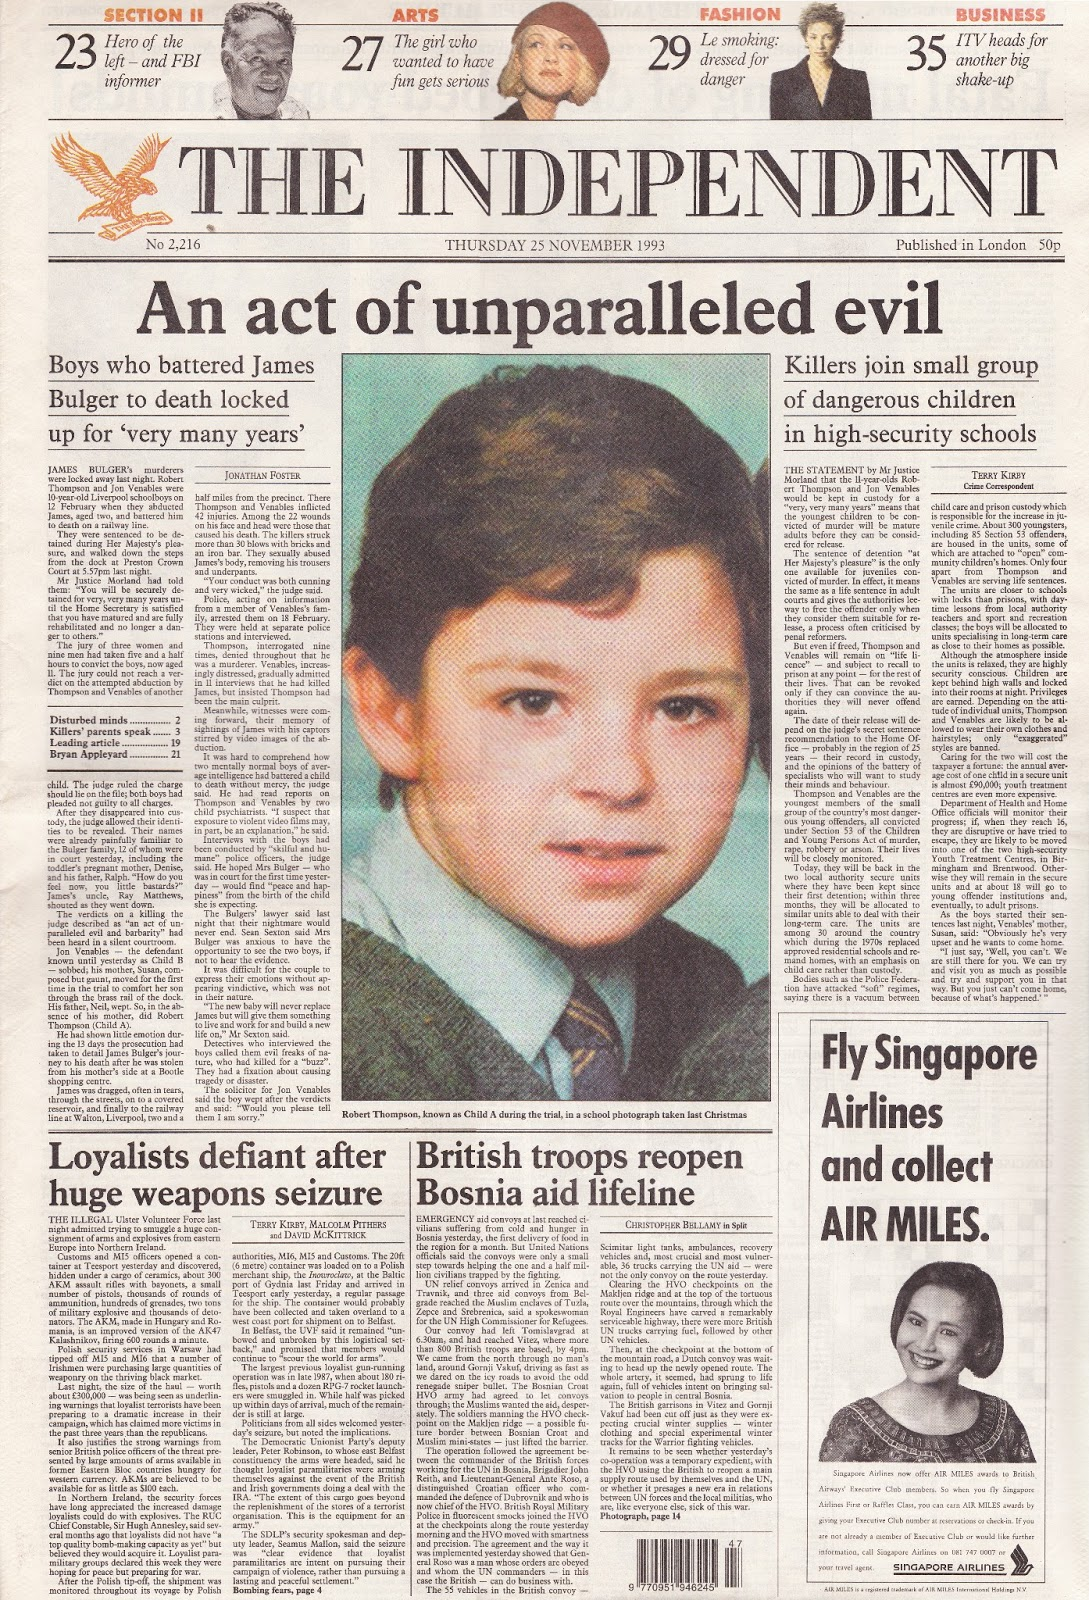 Hold The Front Page: James Bulger Trial Verdict